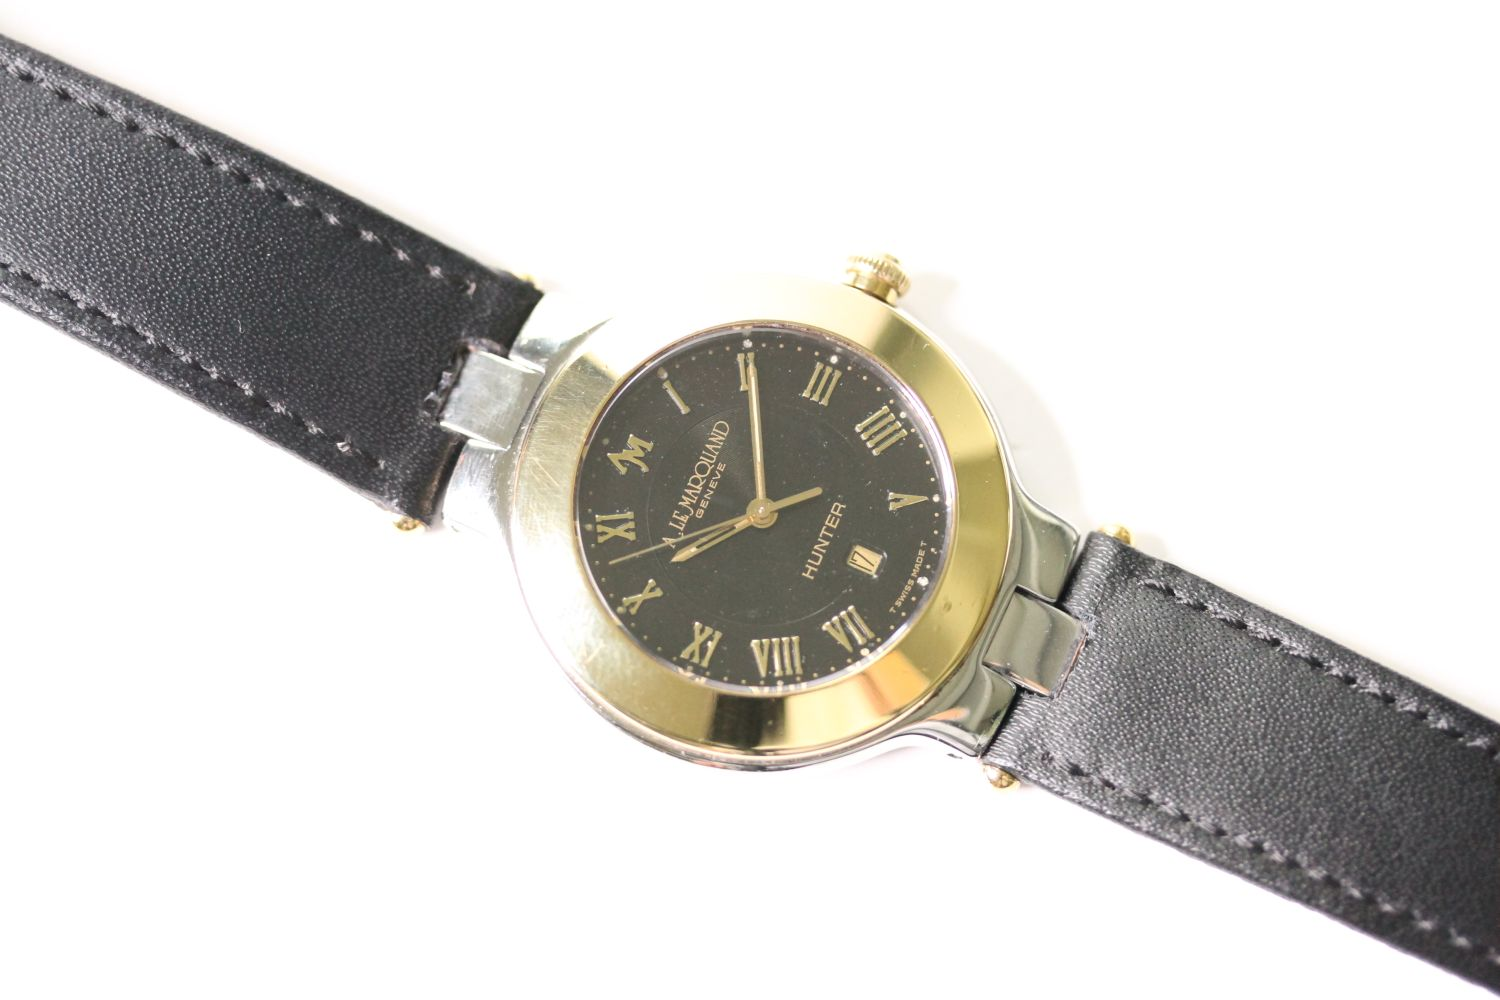 ANDRE LE MARQUAND HUNTER WRIST WATCH, circular black dial with gold arabic numeral hour markers,